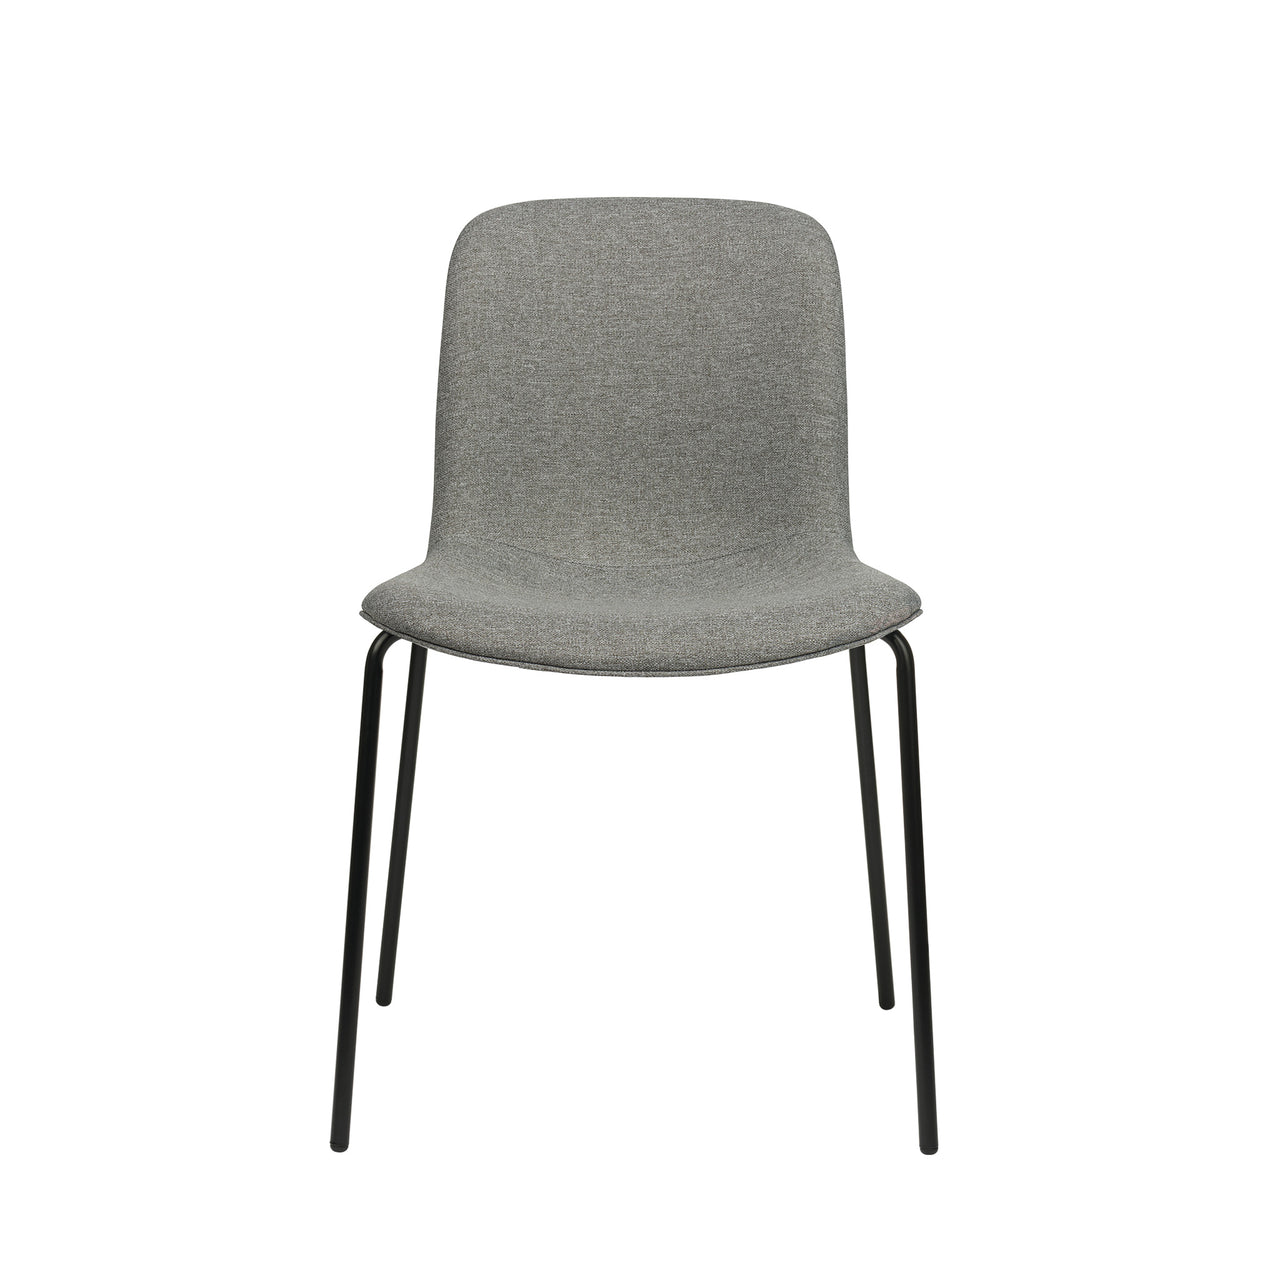 Murray Side Chairs, 4-Leg Base, Set of 2 (Grey Fabric)